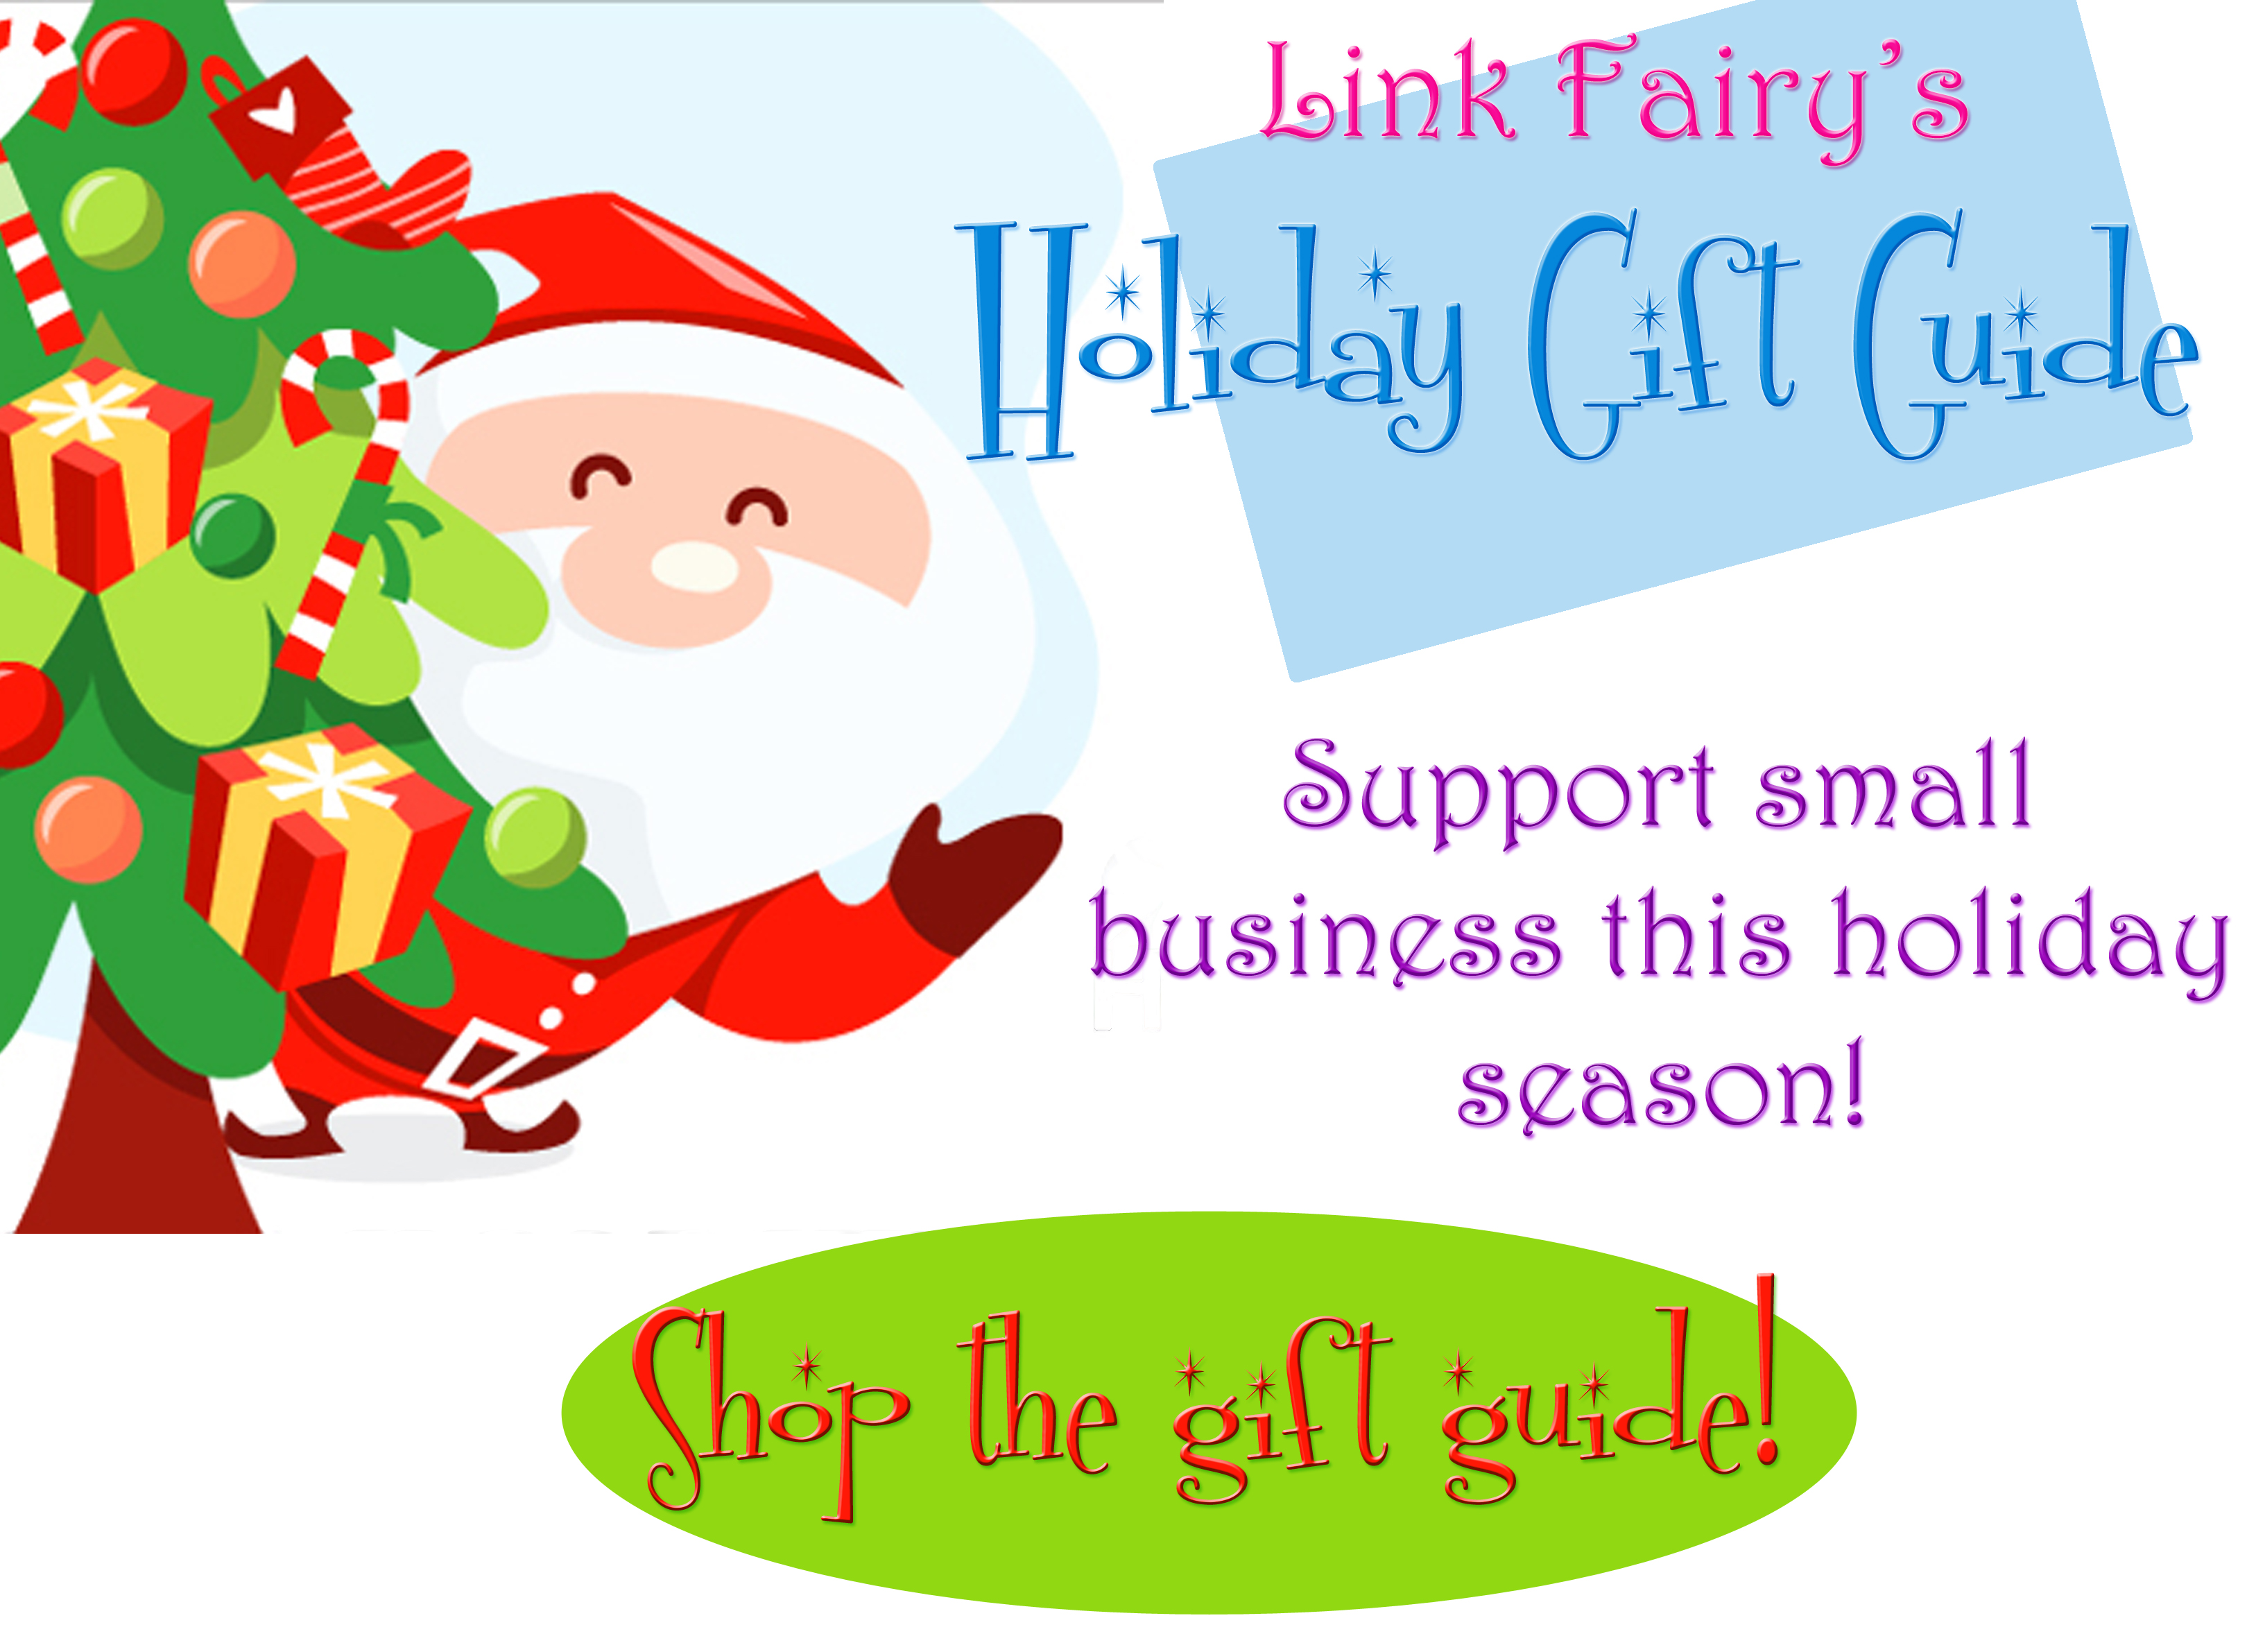 Link Fairy 2012 Holiday Gift Guide!